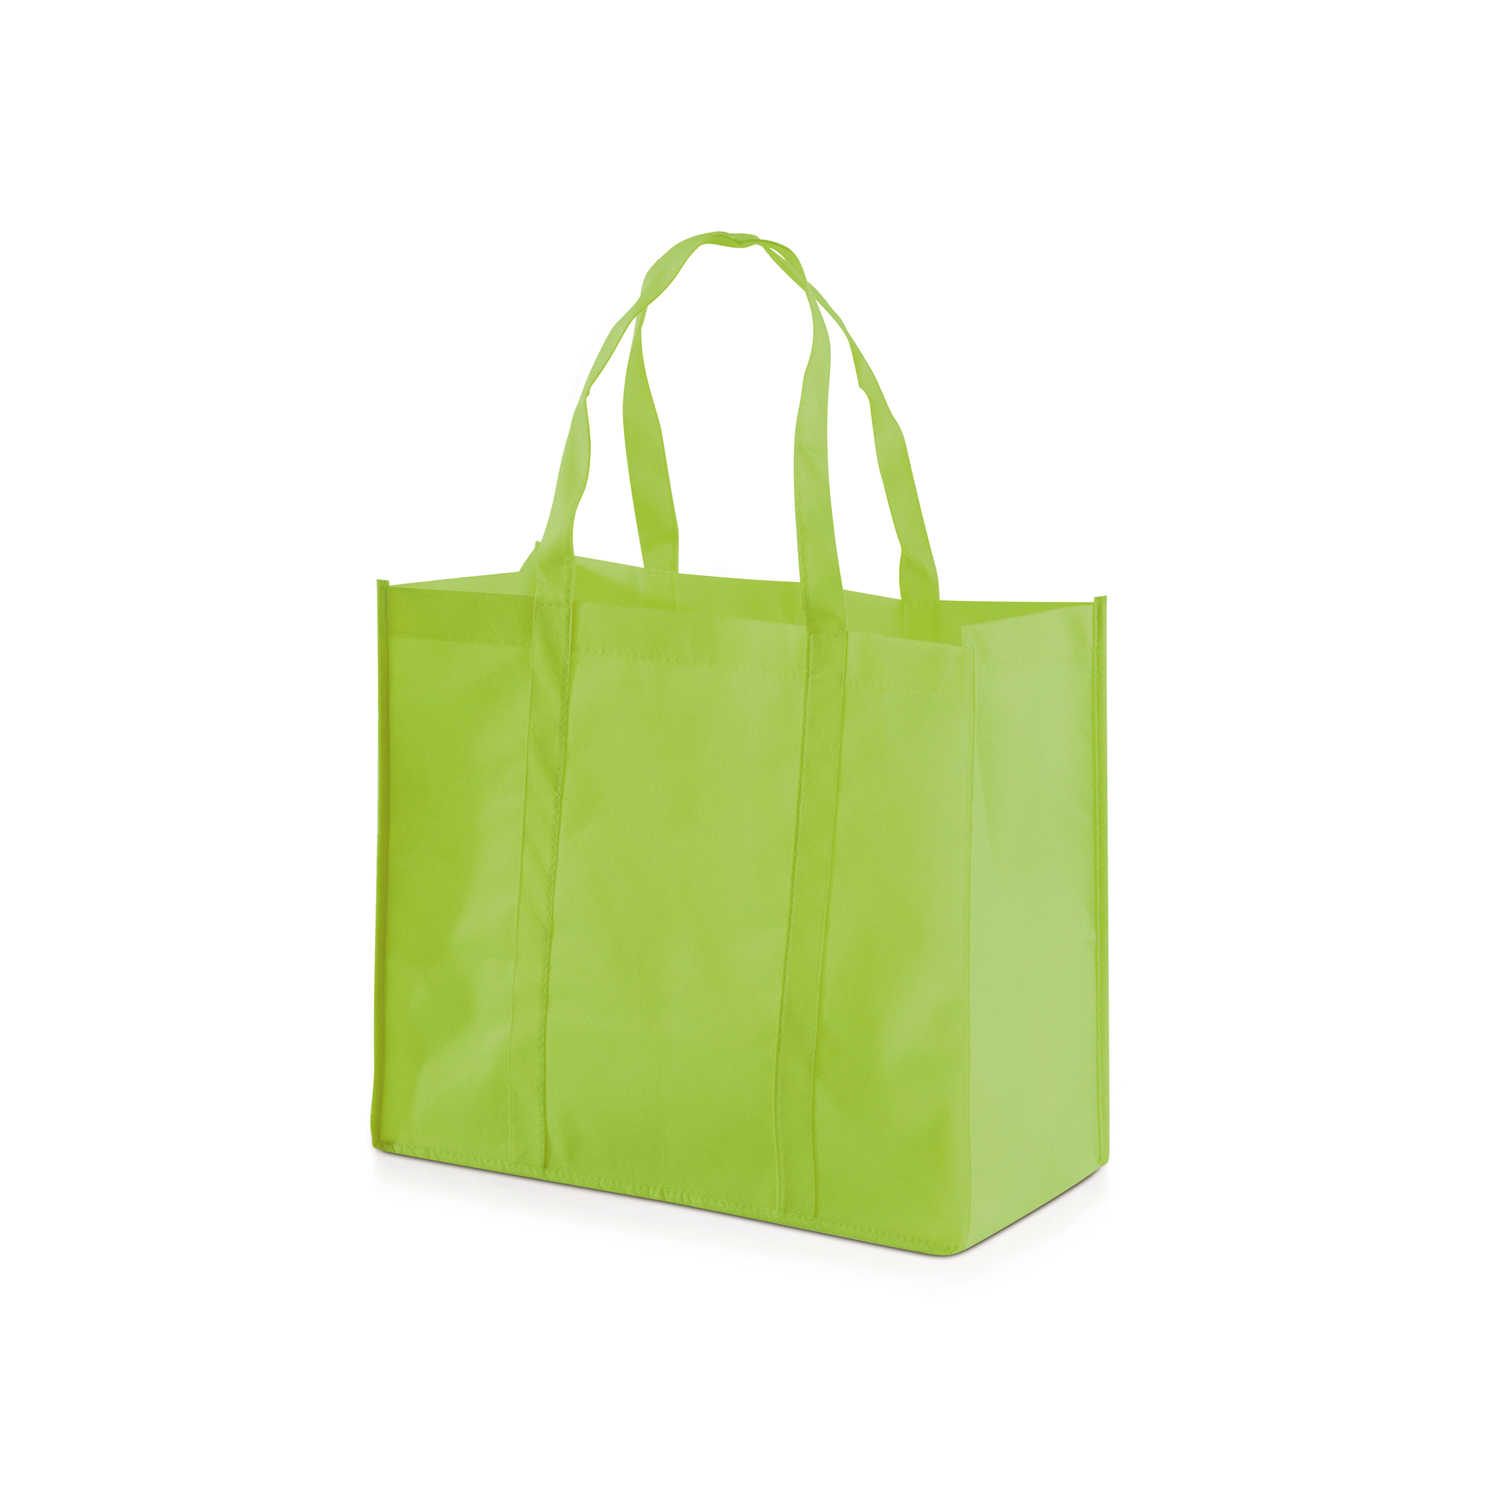 Shopping Bag 013 (Non-woven Shopping bag) - hmi17013-09 (Green)